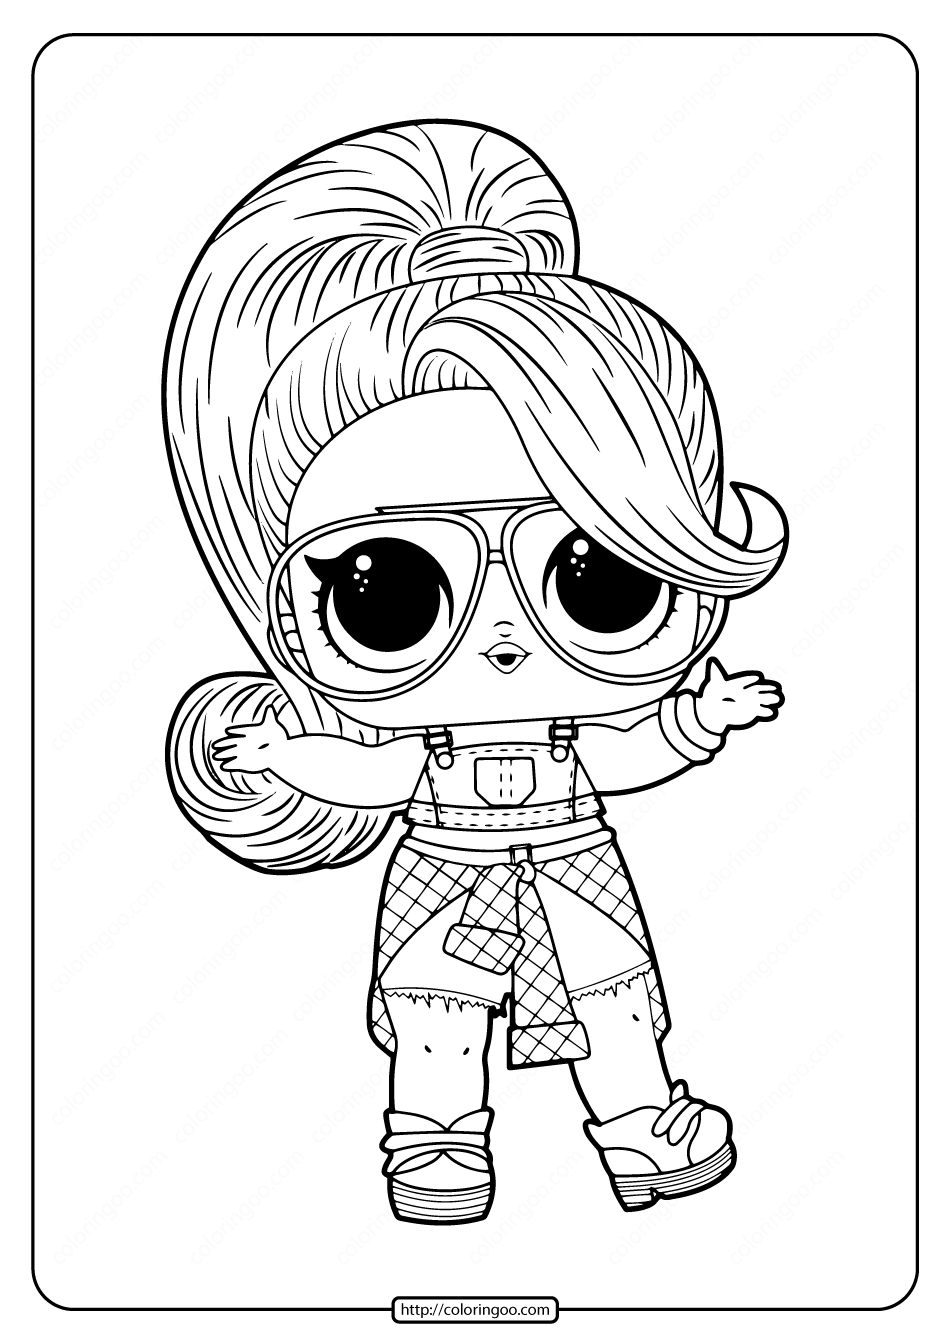 Free Printable Lol Doll Twang Coloring Pages Unicorn Coloring Pages Cool Coloring Pages Mermaid Coloring Pages